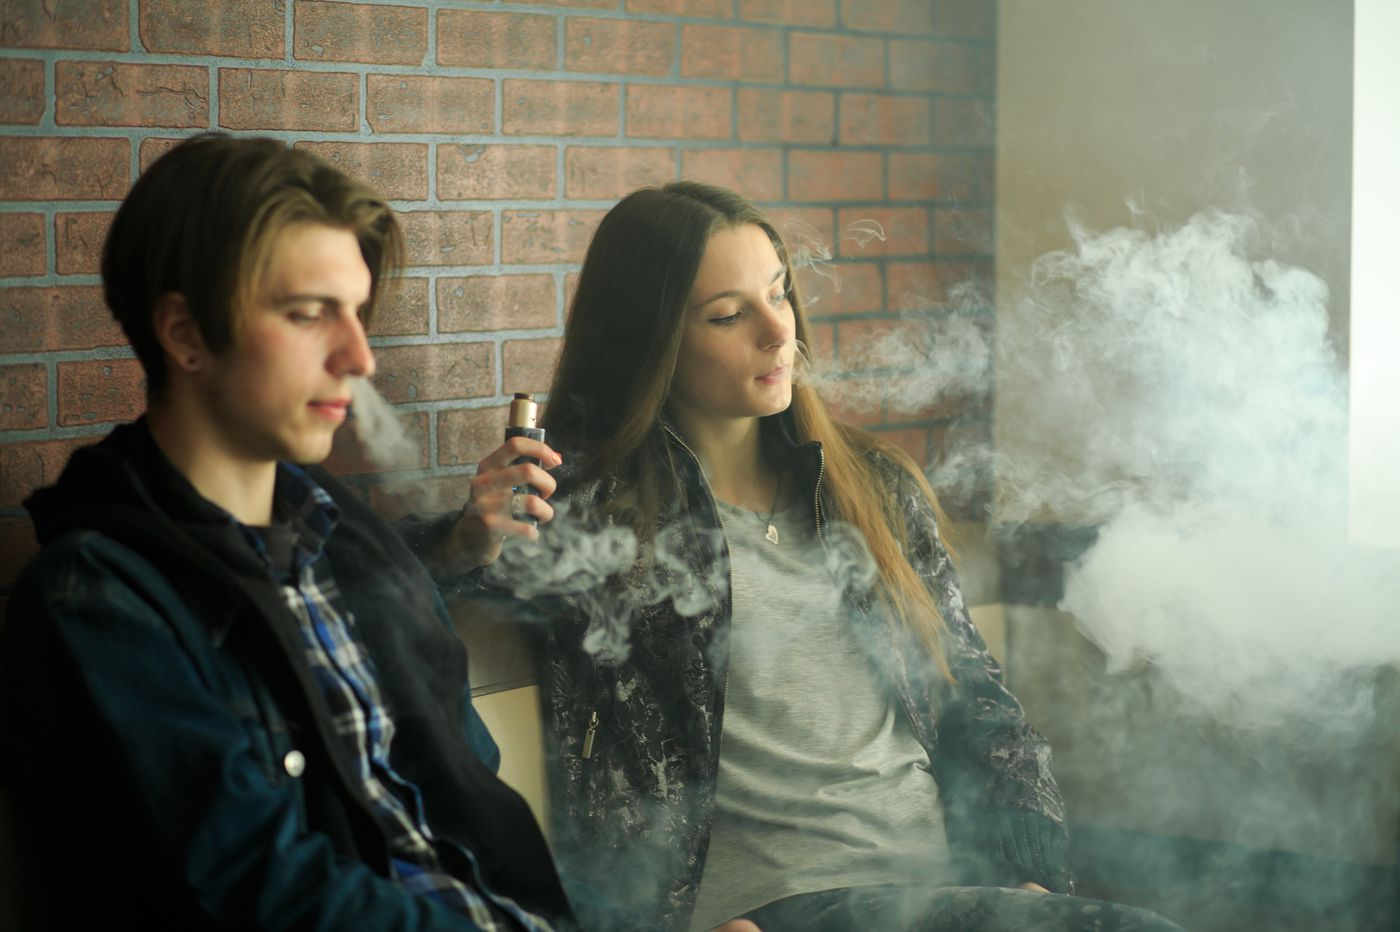 Educating teens about substance abuse is still essential | Expert Opinion